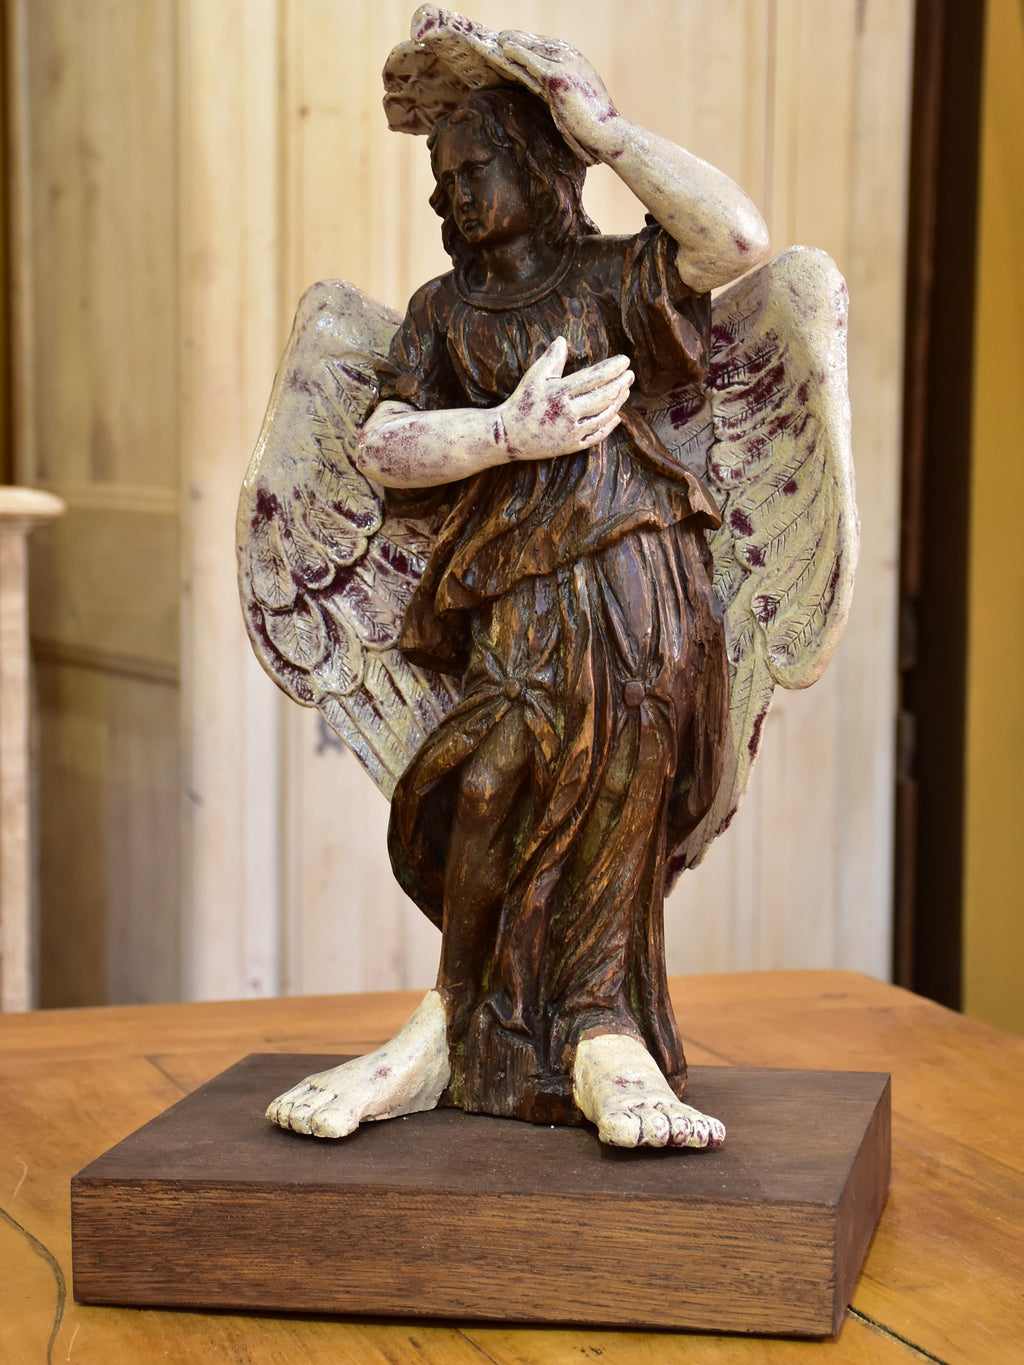 17th century Angel sculpture from a French church with a modern twist – 2/2